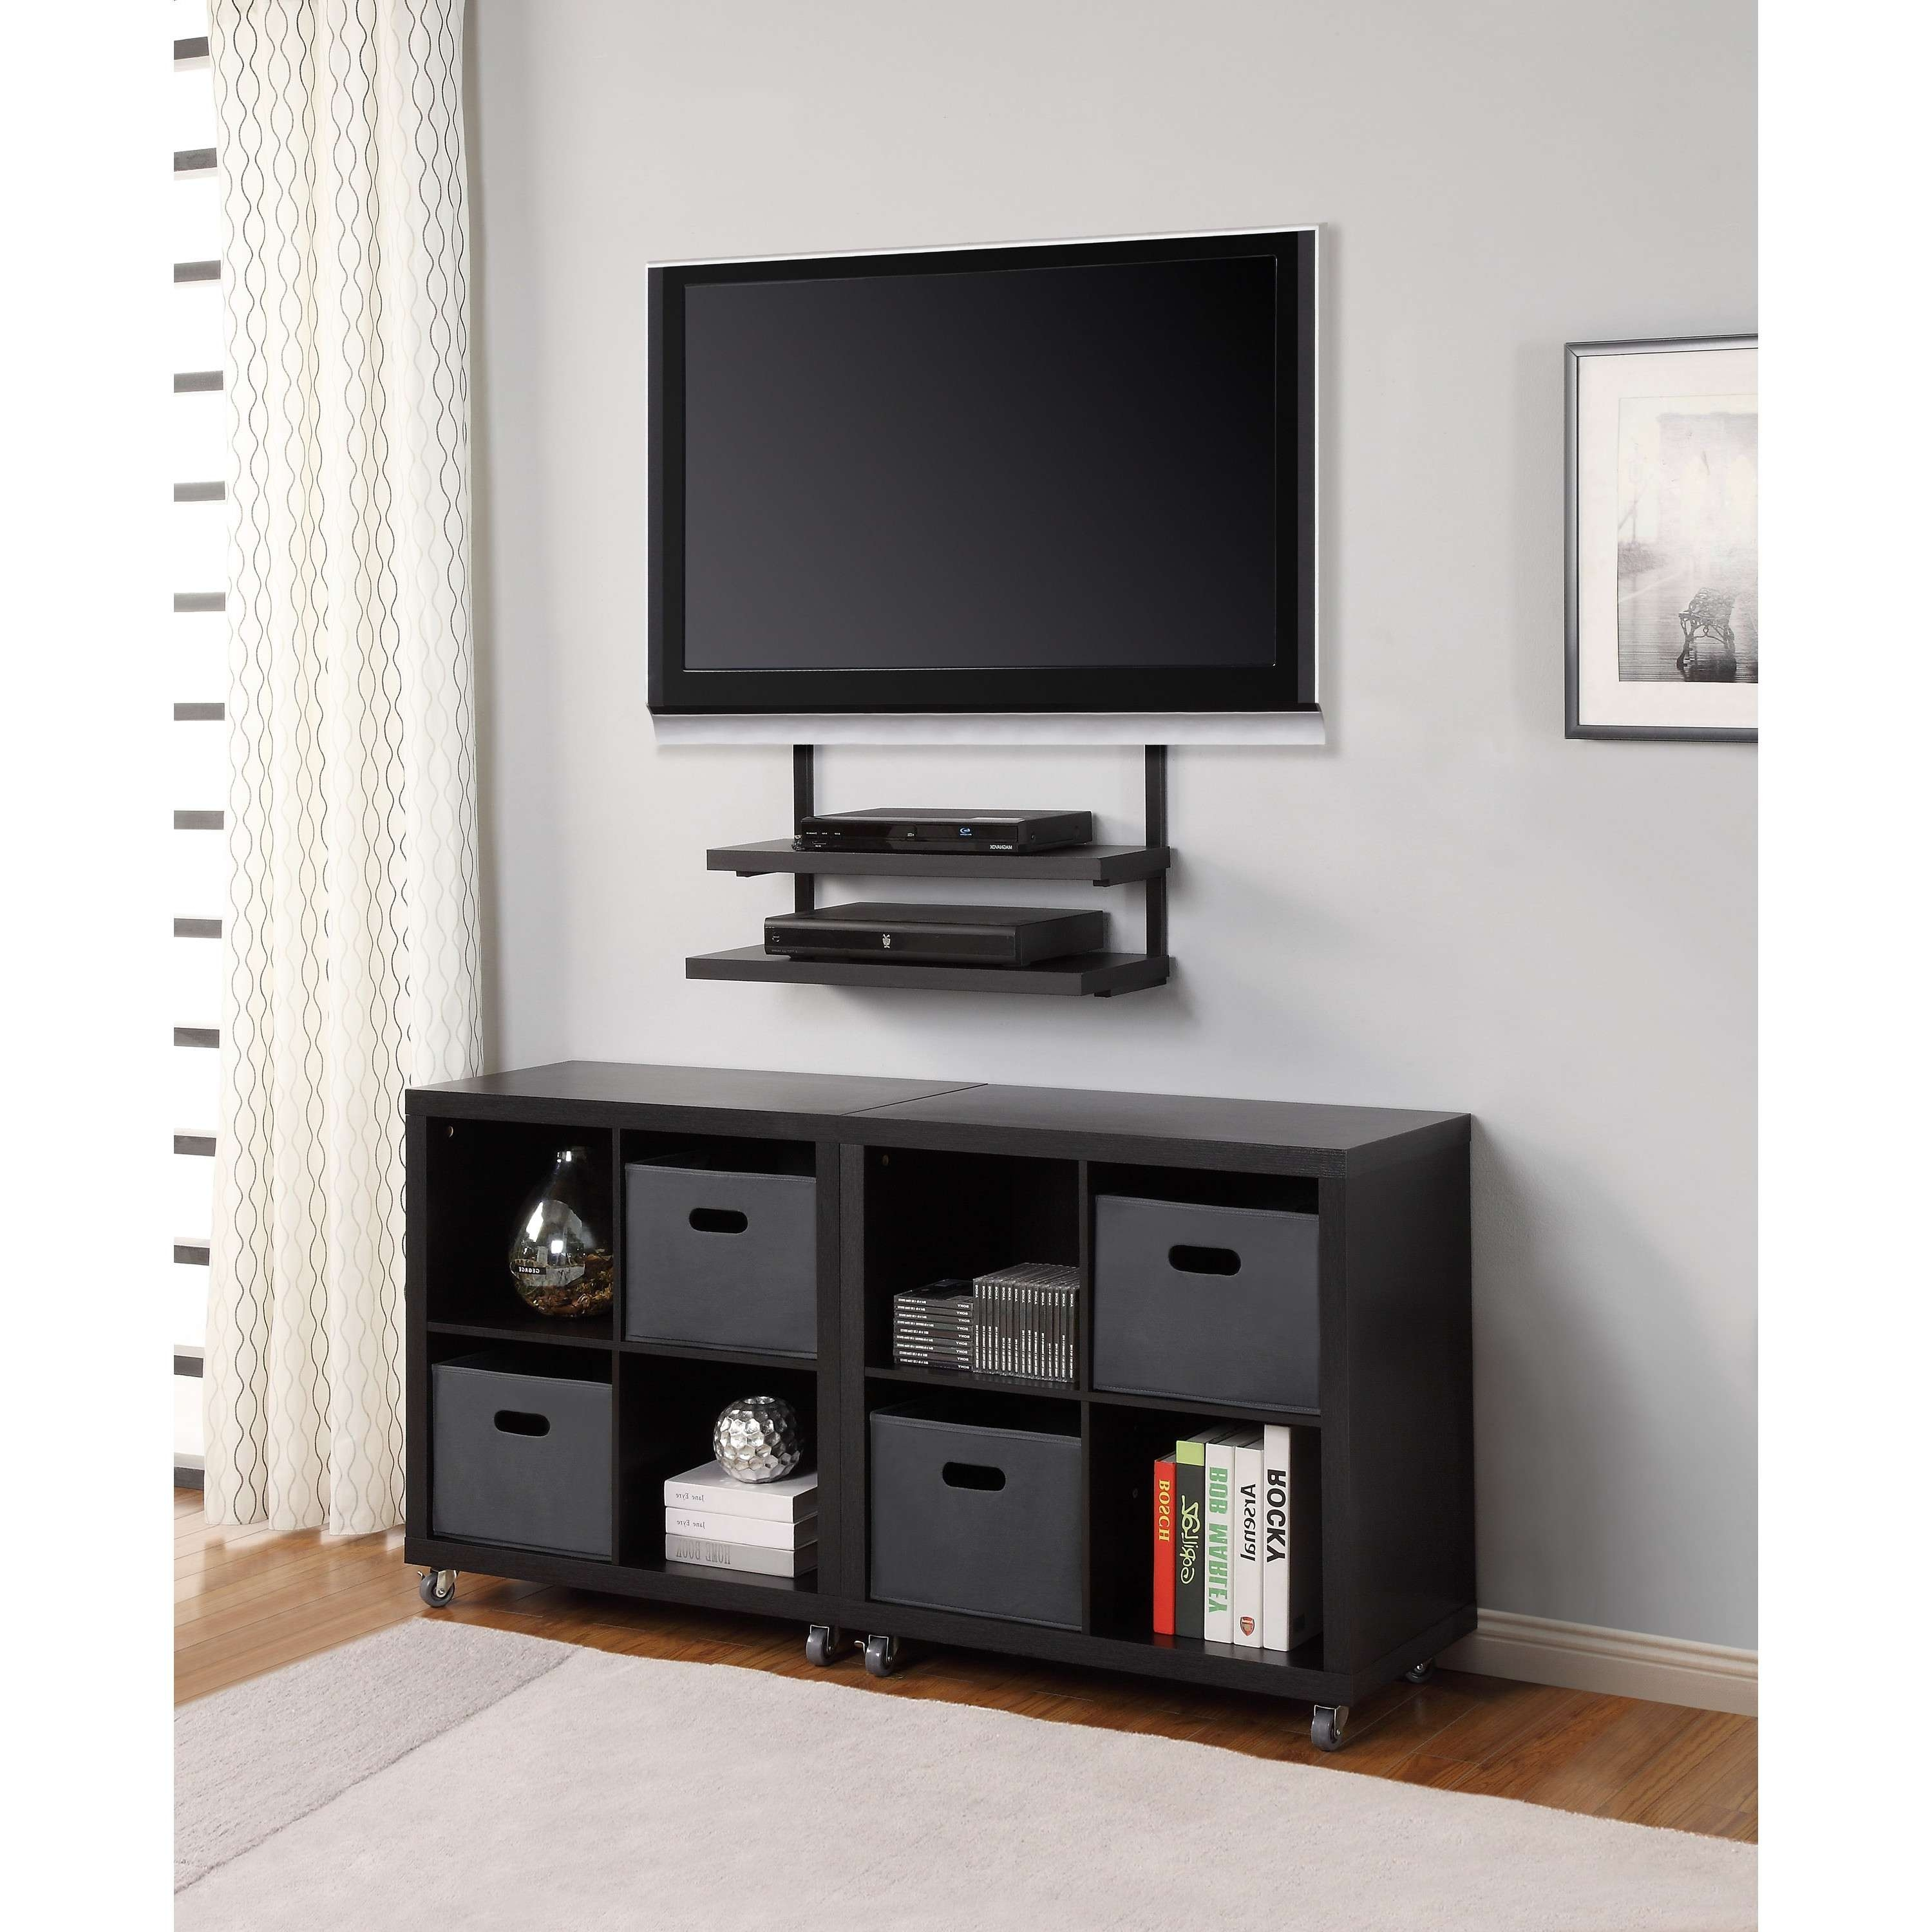 Tv Wall Mount Cabinet – Surripui Inside Wall Mounted Tv Stands For Flat Screens (View 3 of 15)